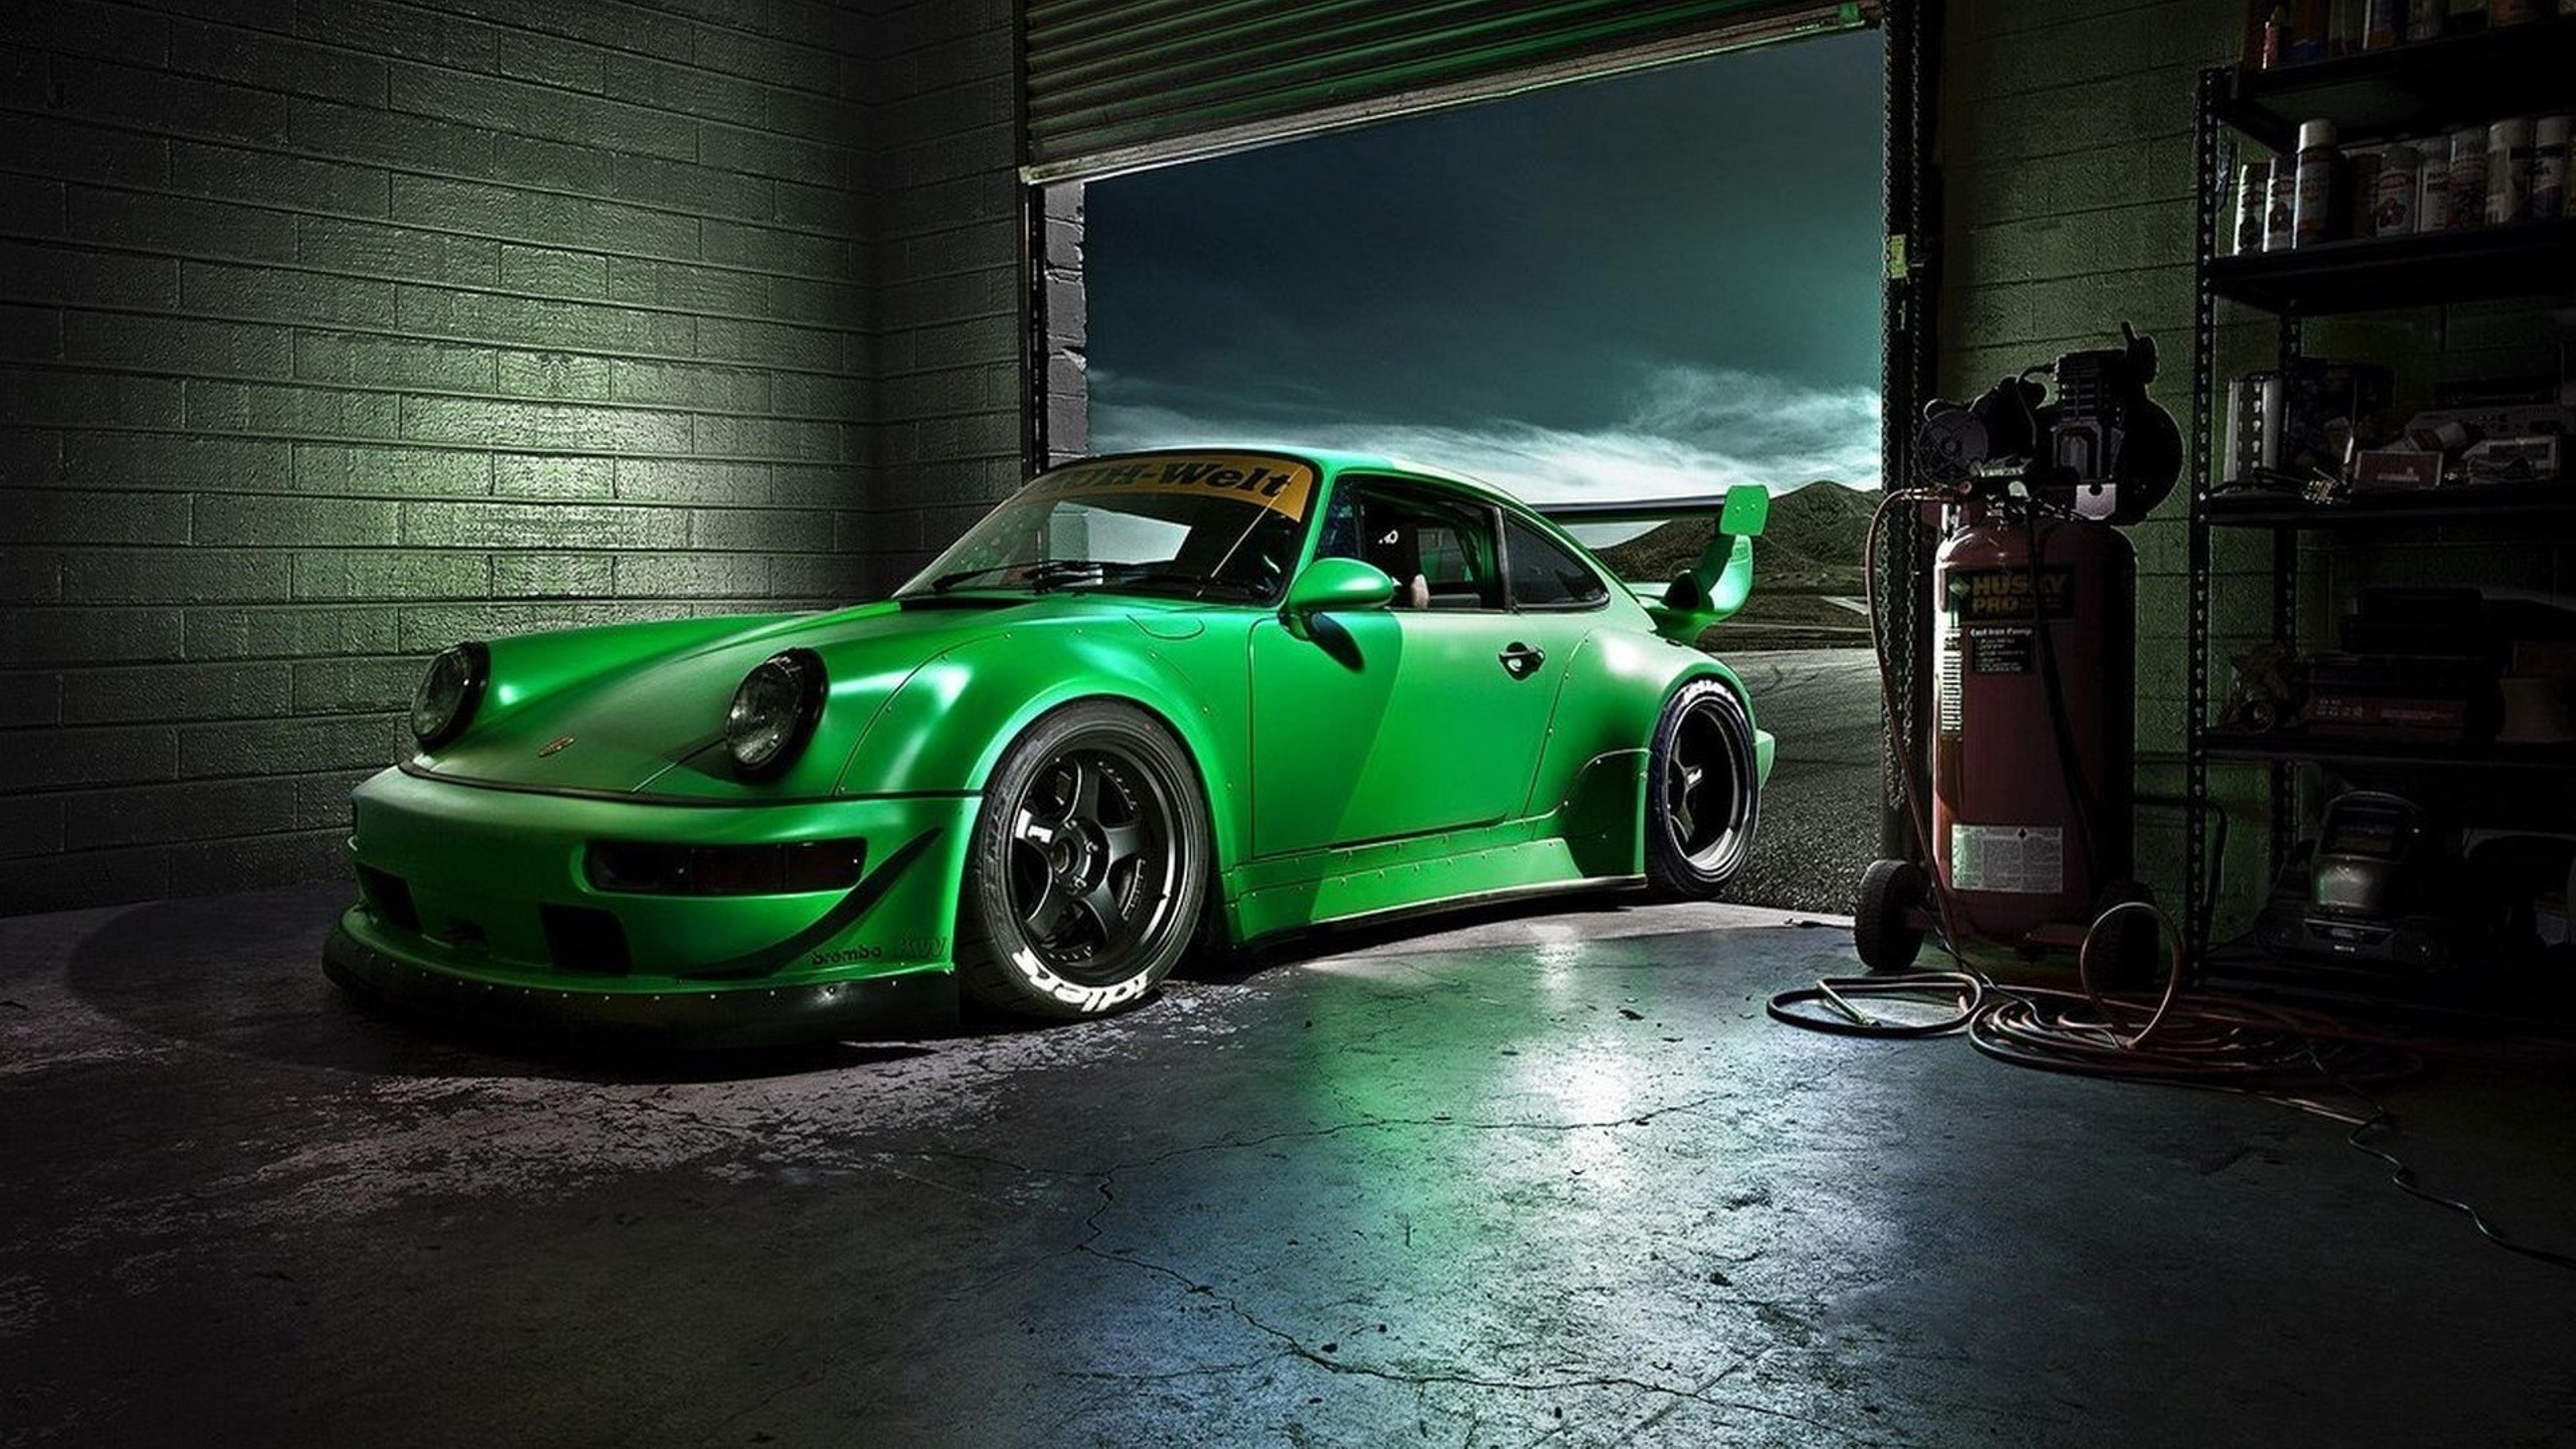 Green Porsche Carrera In A Garage Sports Car Wallpaper